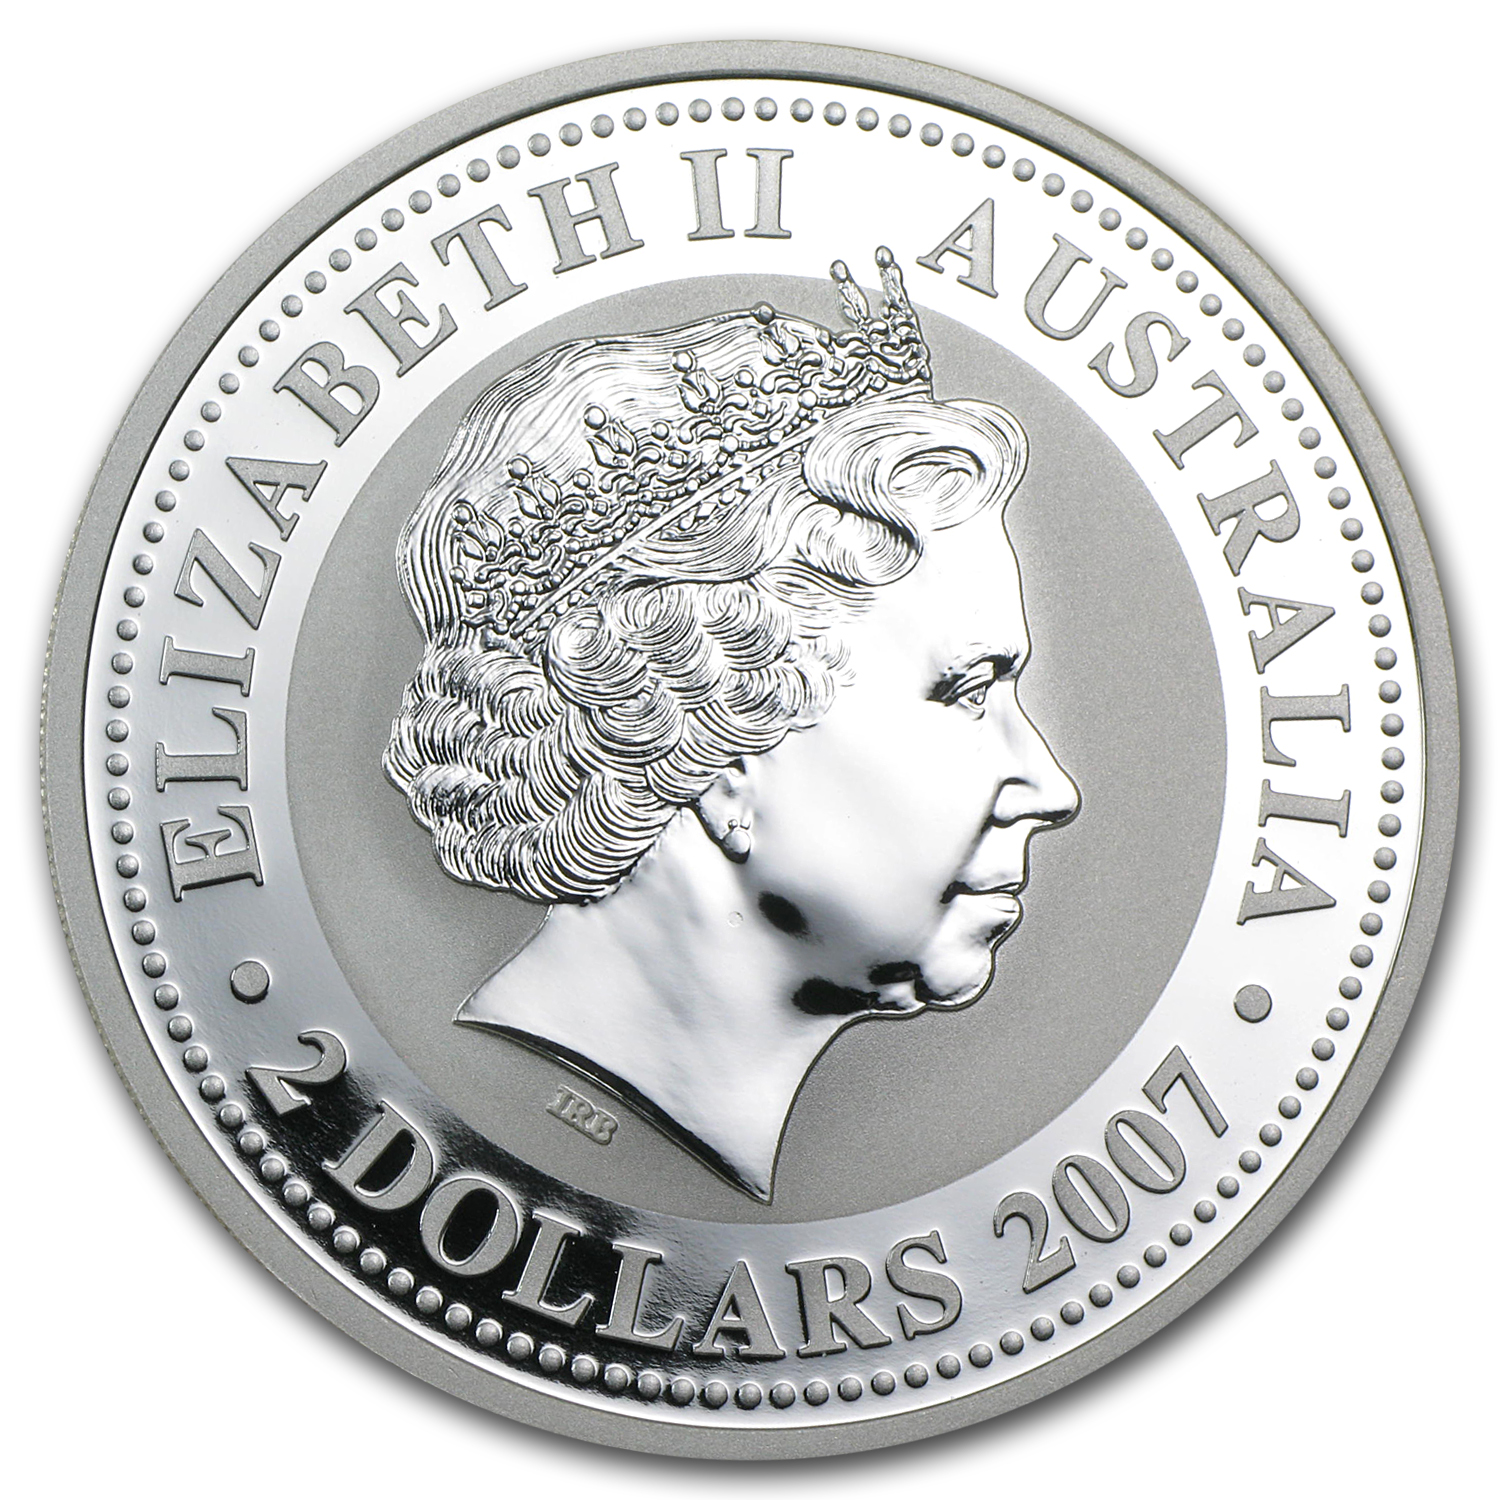 2010 Australia 2 oz Silver Year of the Tiger BU (Series I)